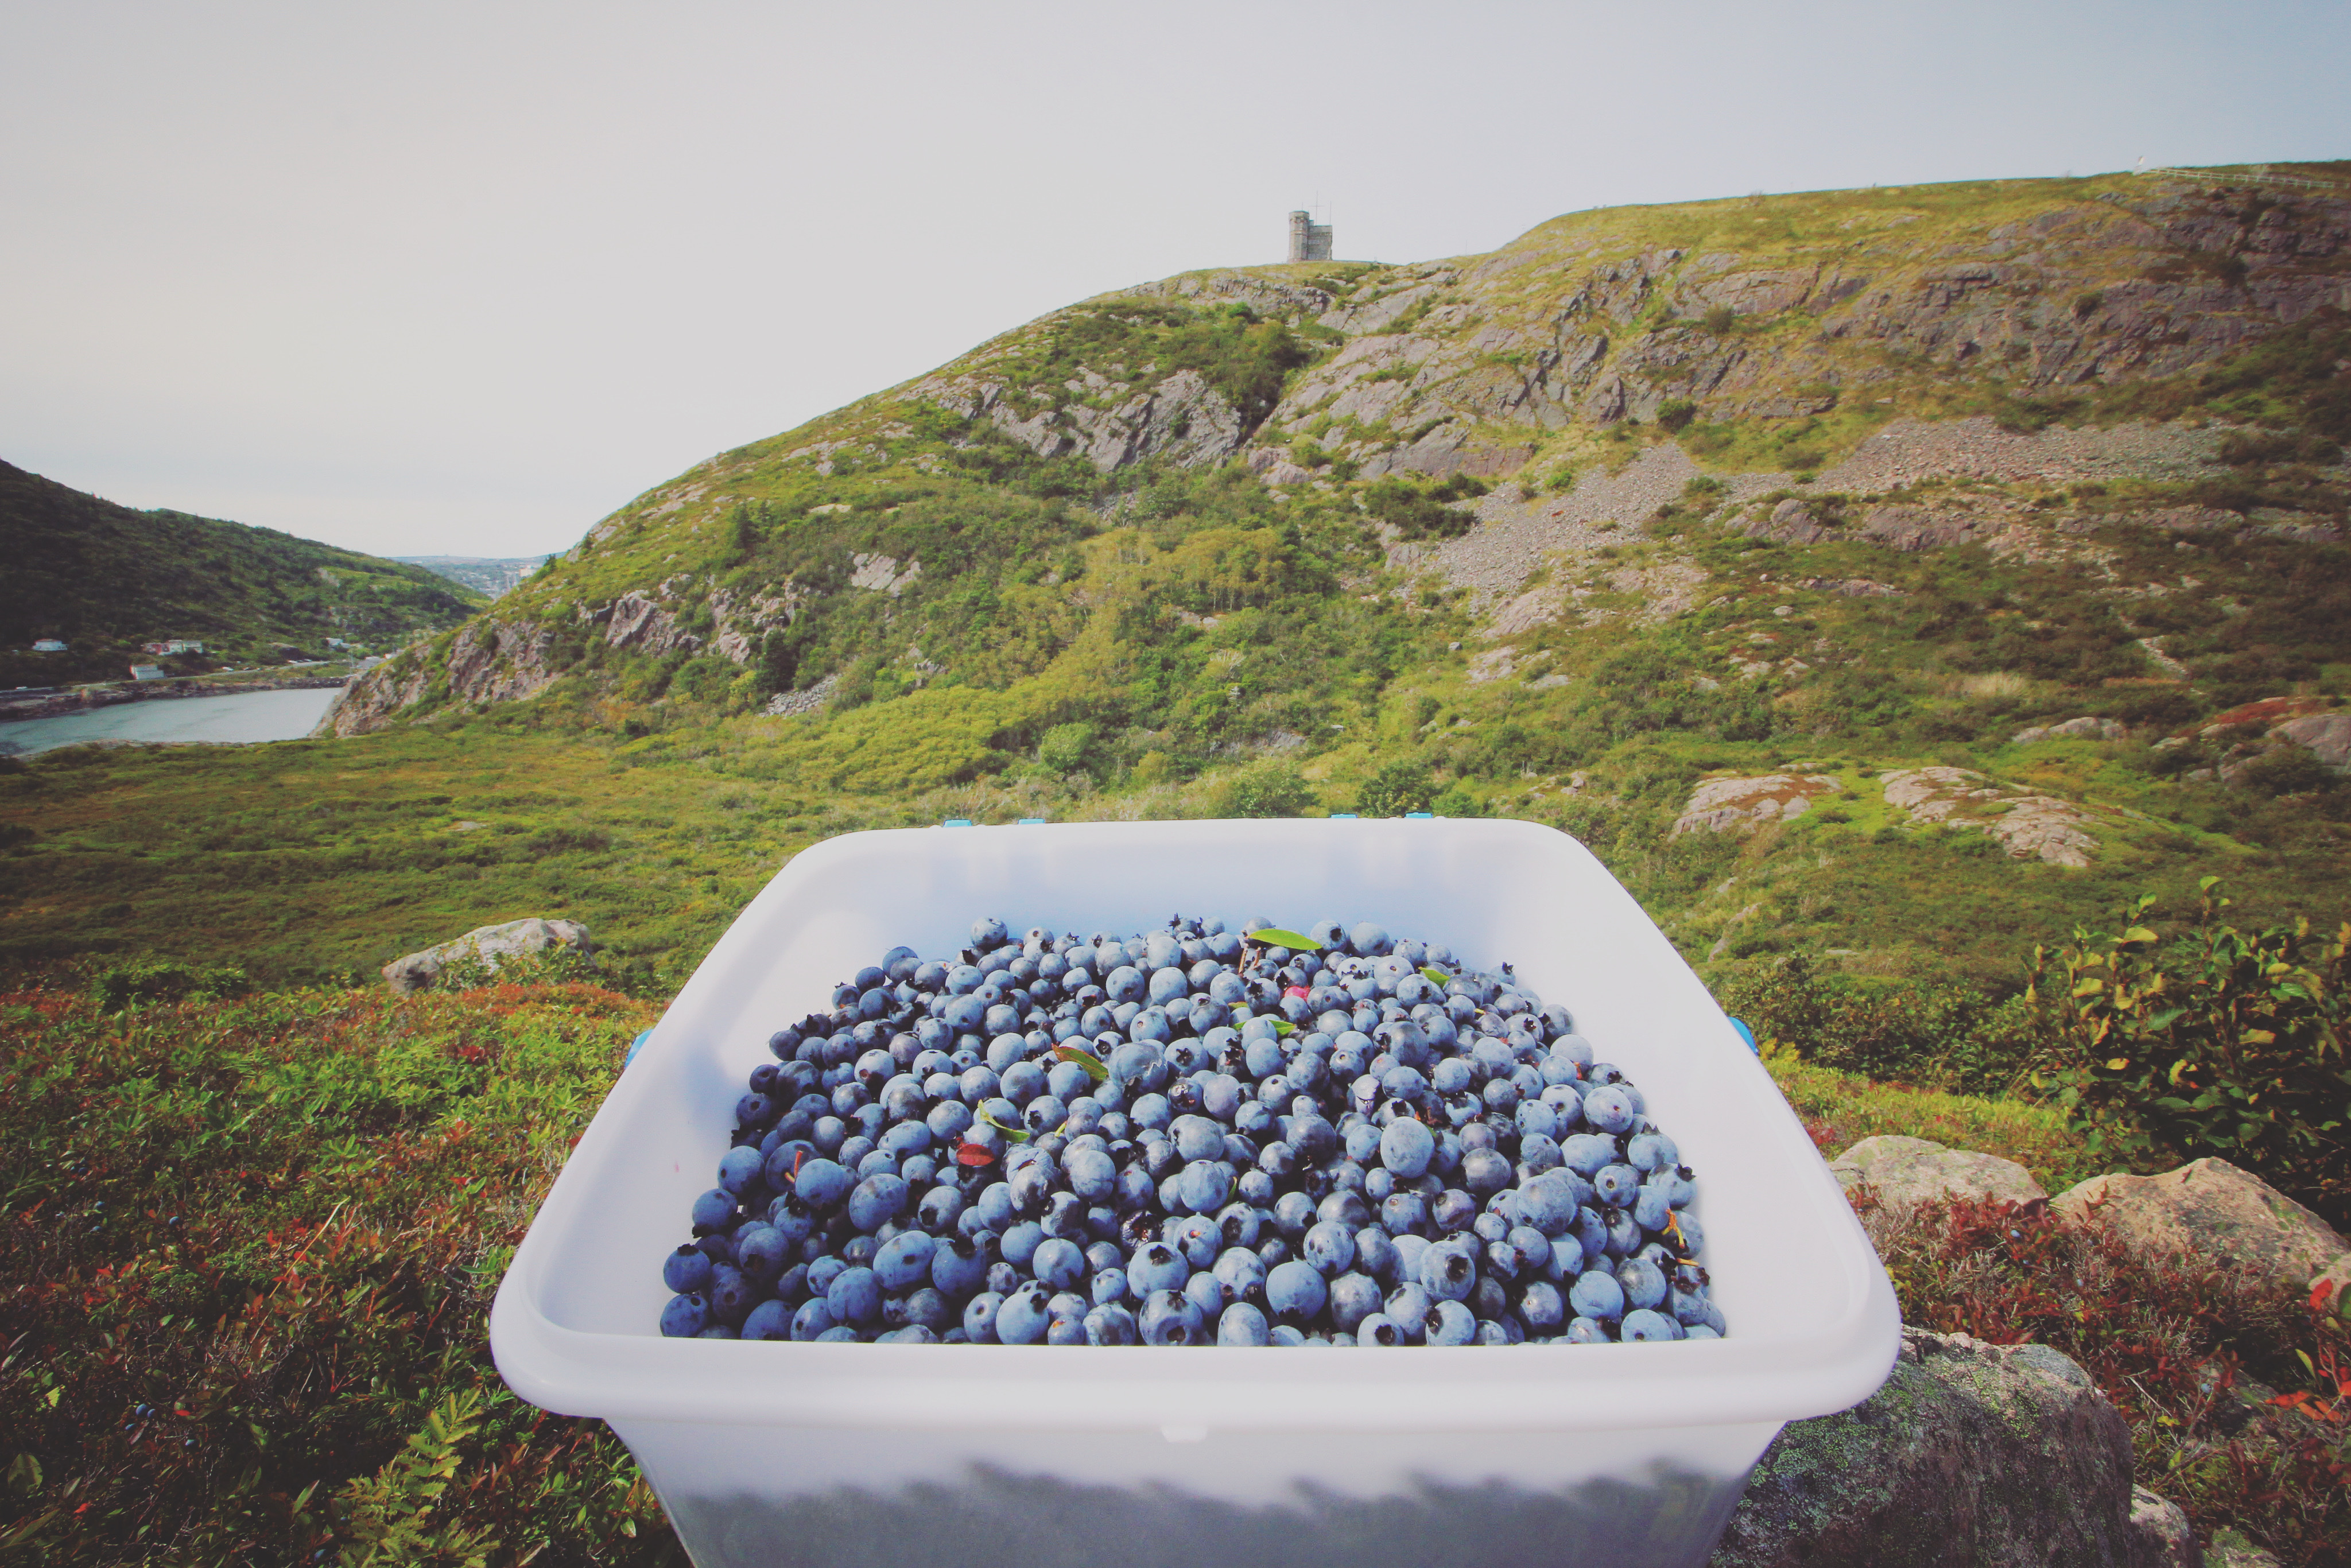 Rowbottom sells buckets of berries to people through online classifieds. It took him an hour to pick these. (Gavin Simms/CBC)